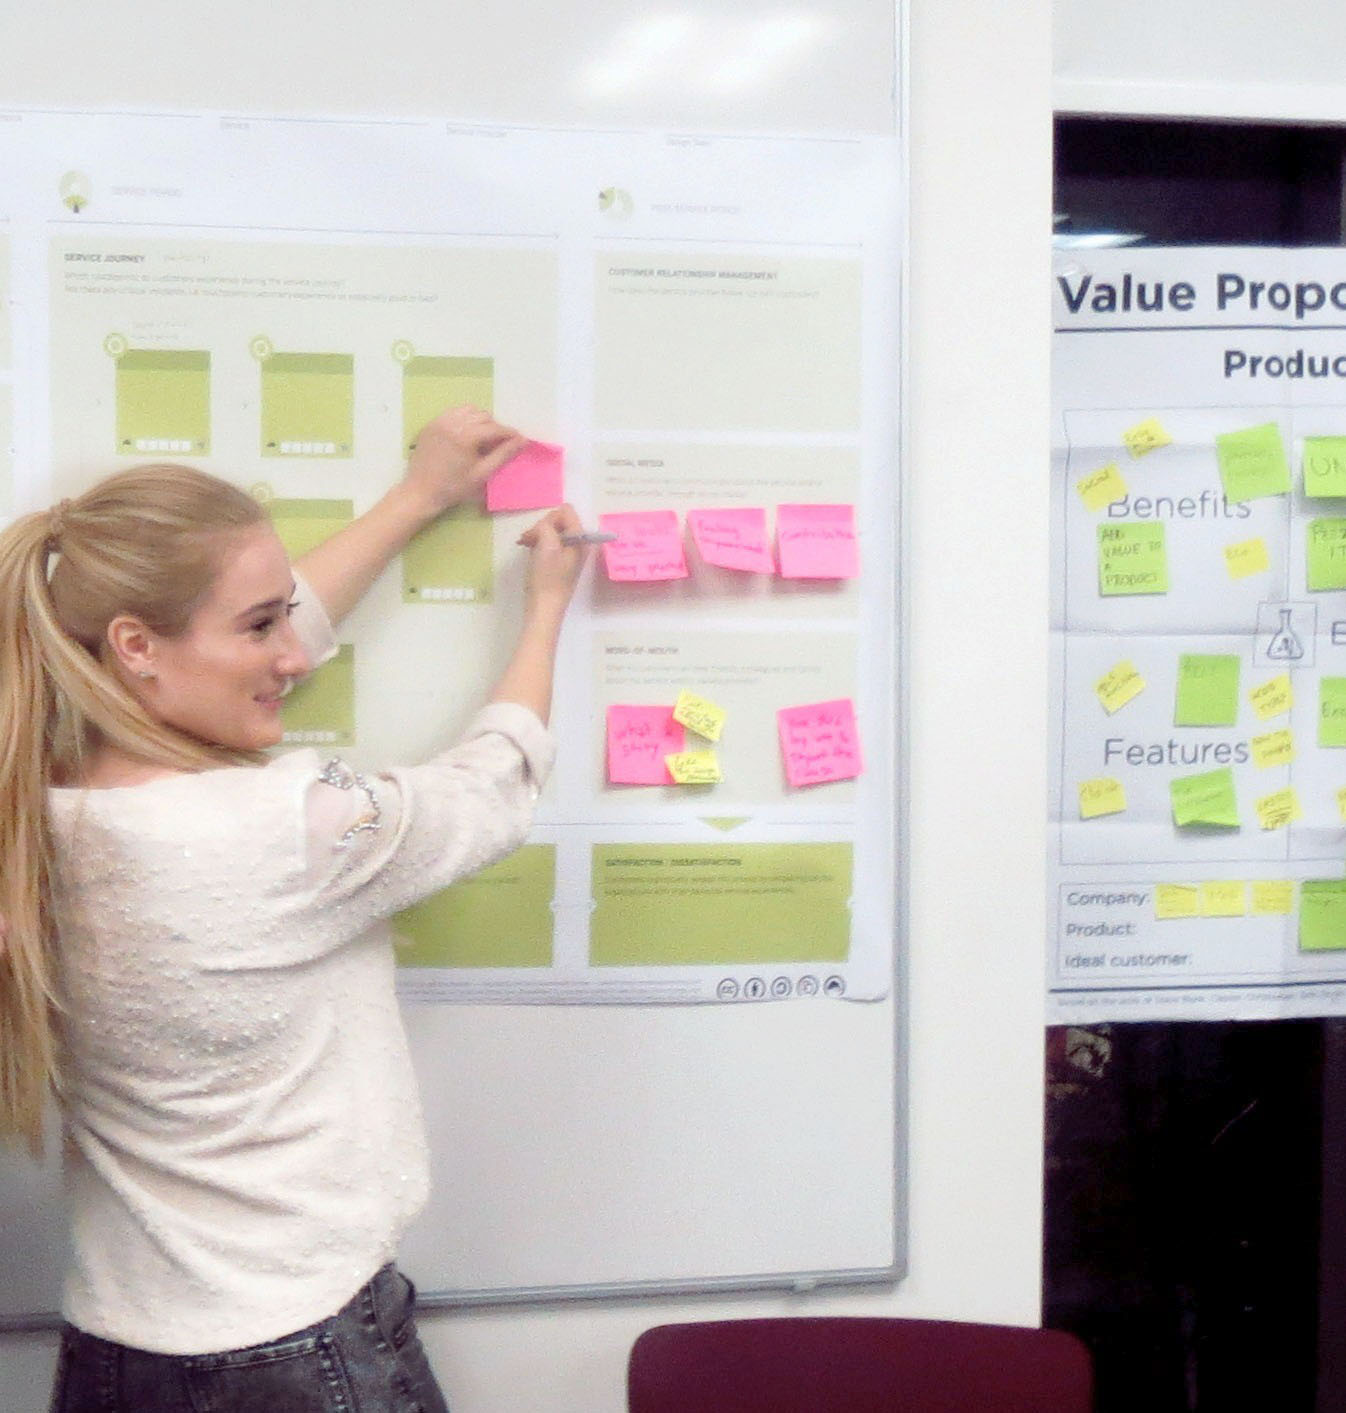 To analyse our findings the affinity map was created